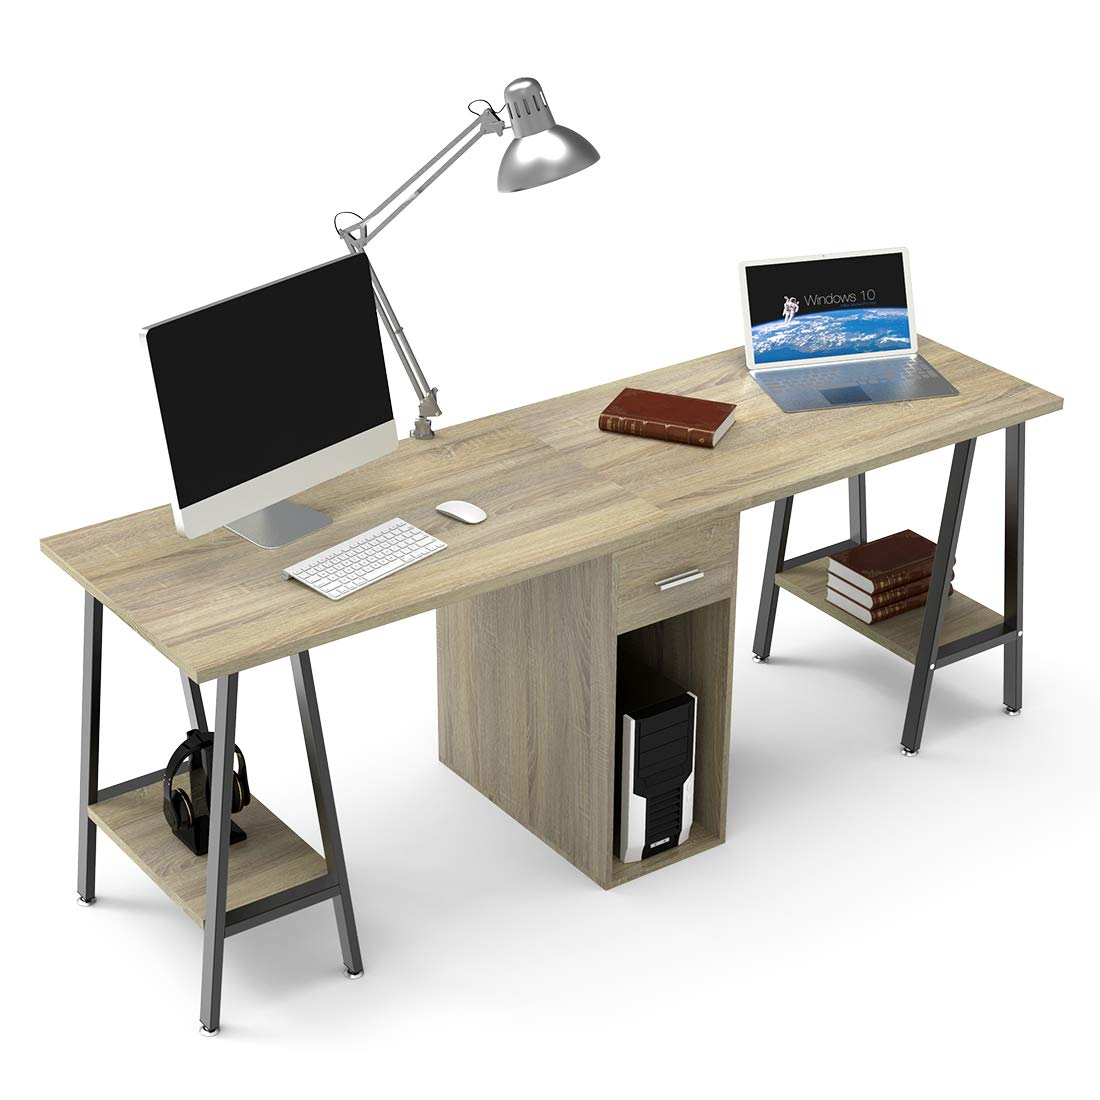 DEWEL Two Person Computer Desk with Drawers 78'' Extra Large Long Computer Desk Double Workstation Computer desks with Storage Wood Big Dual Computer Desk Executive Office Desk by DEWEL